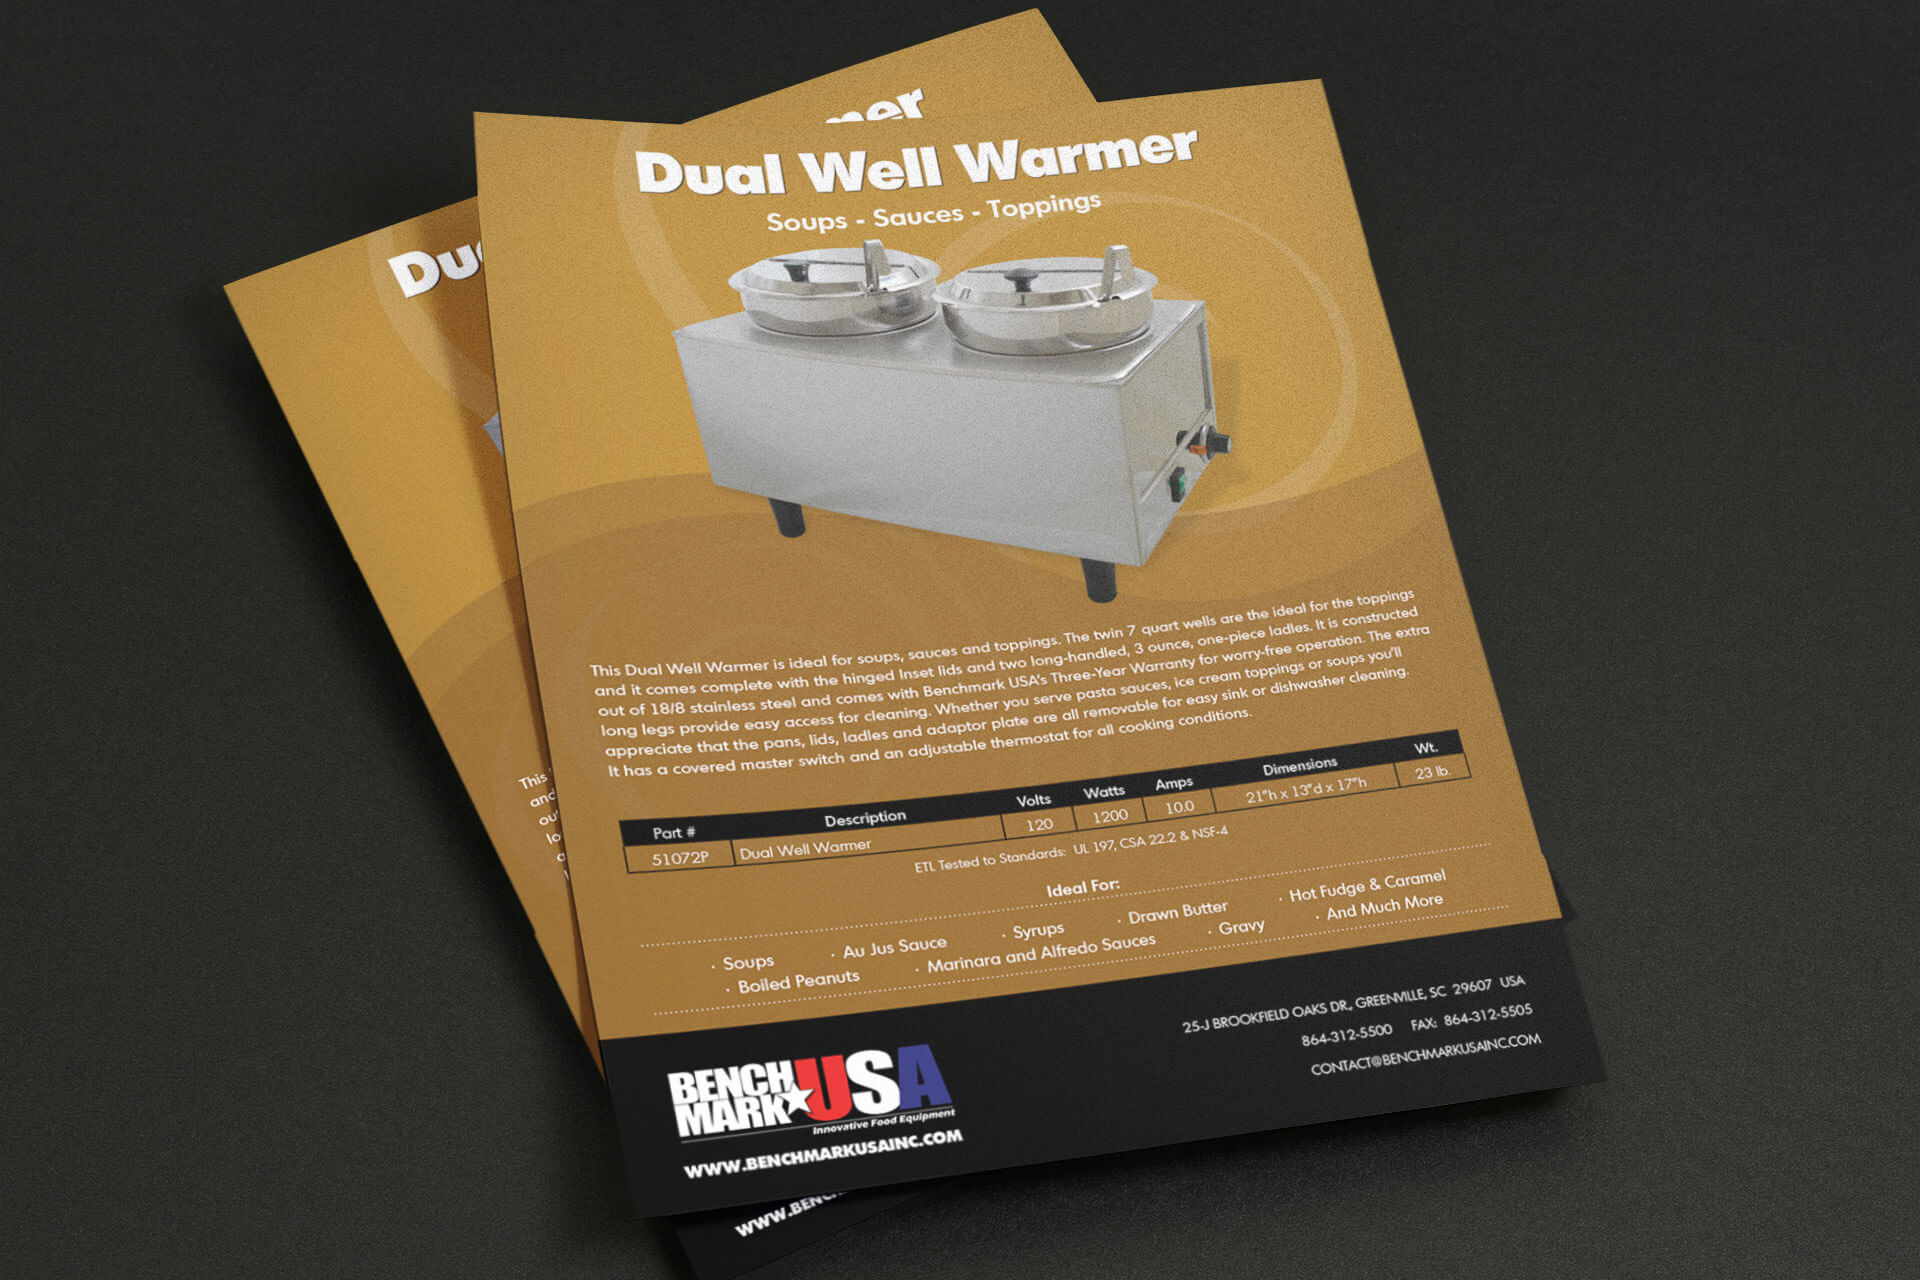 Graphic Design - Flyer for Benchmark USA's Dual Well Warmer